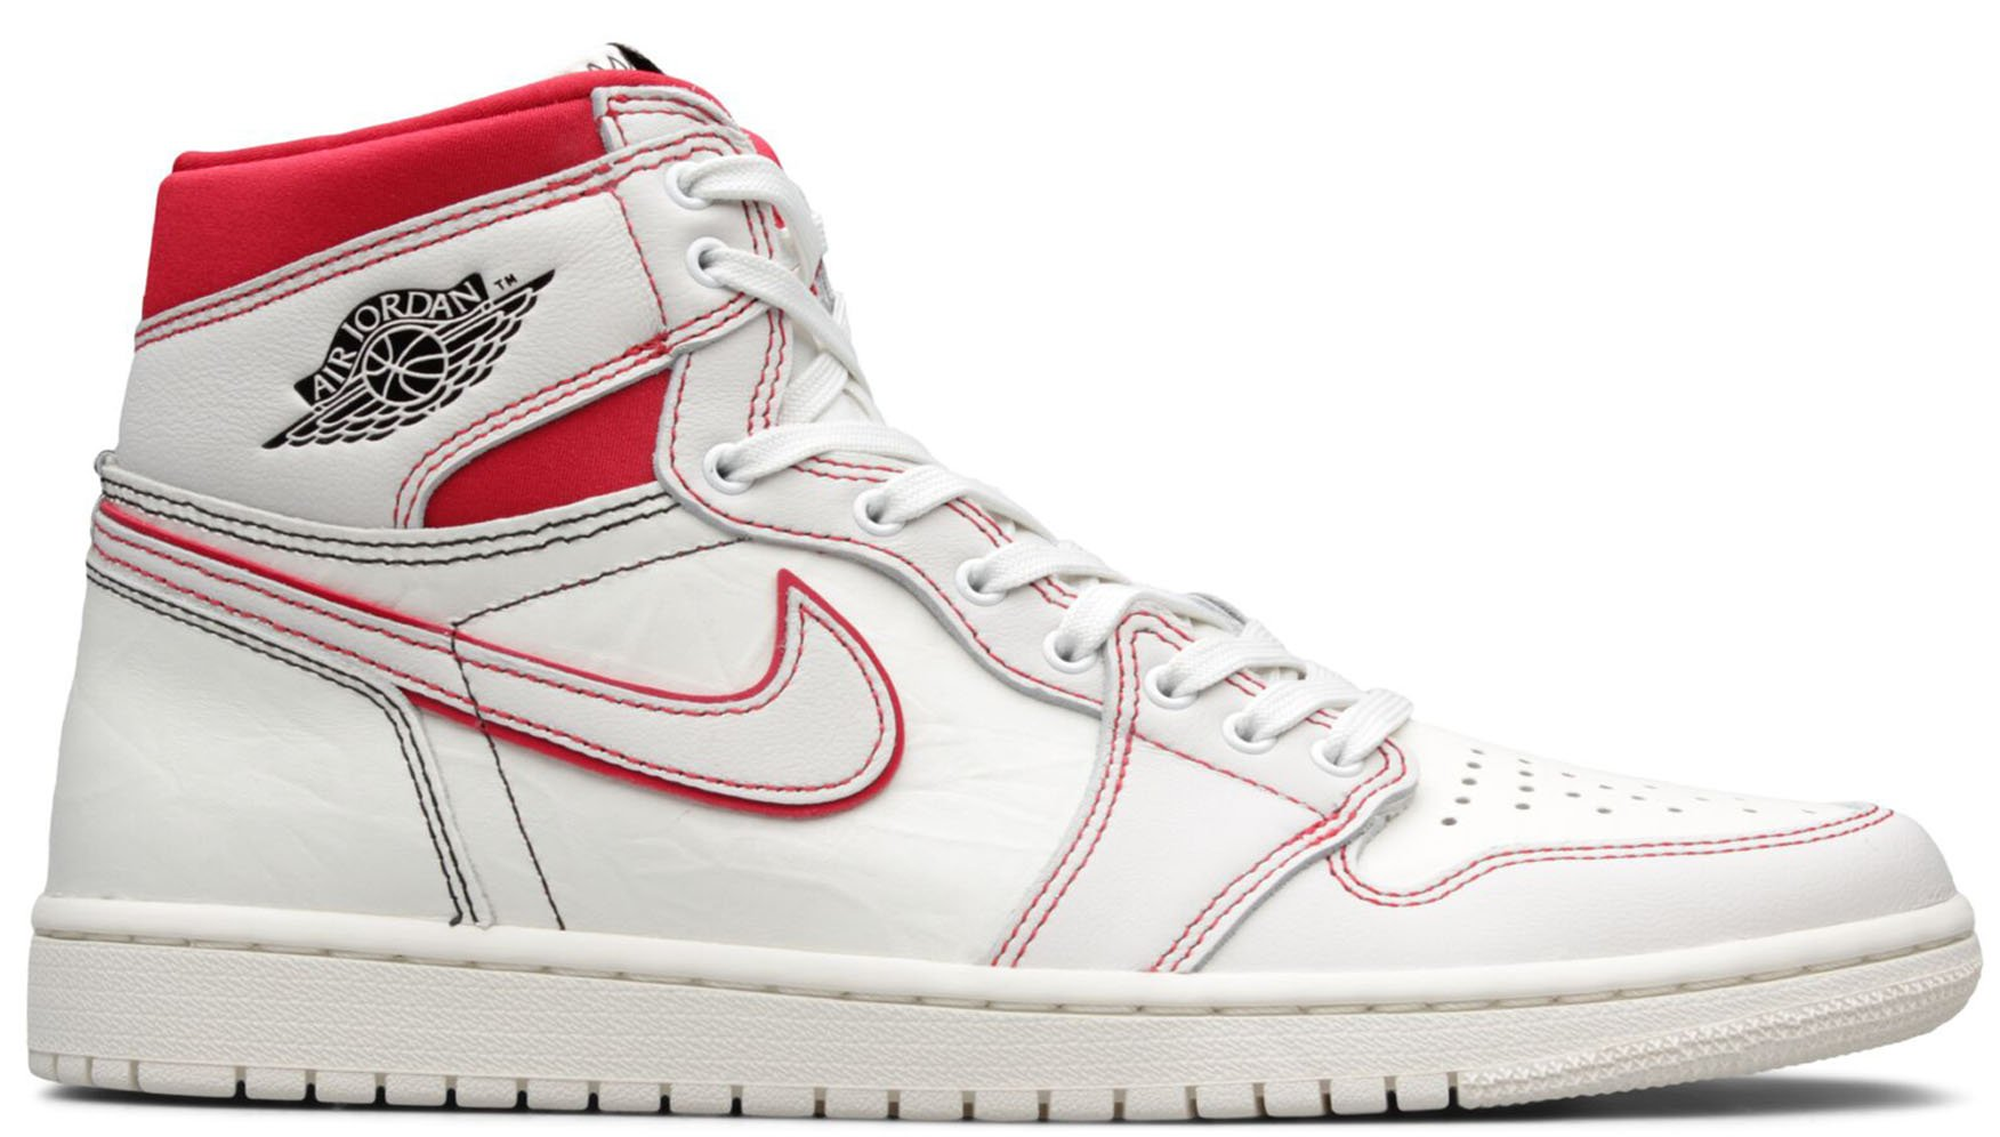 Jordan 1 Retro High Phantom Gym Red (GS)